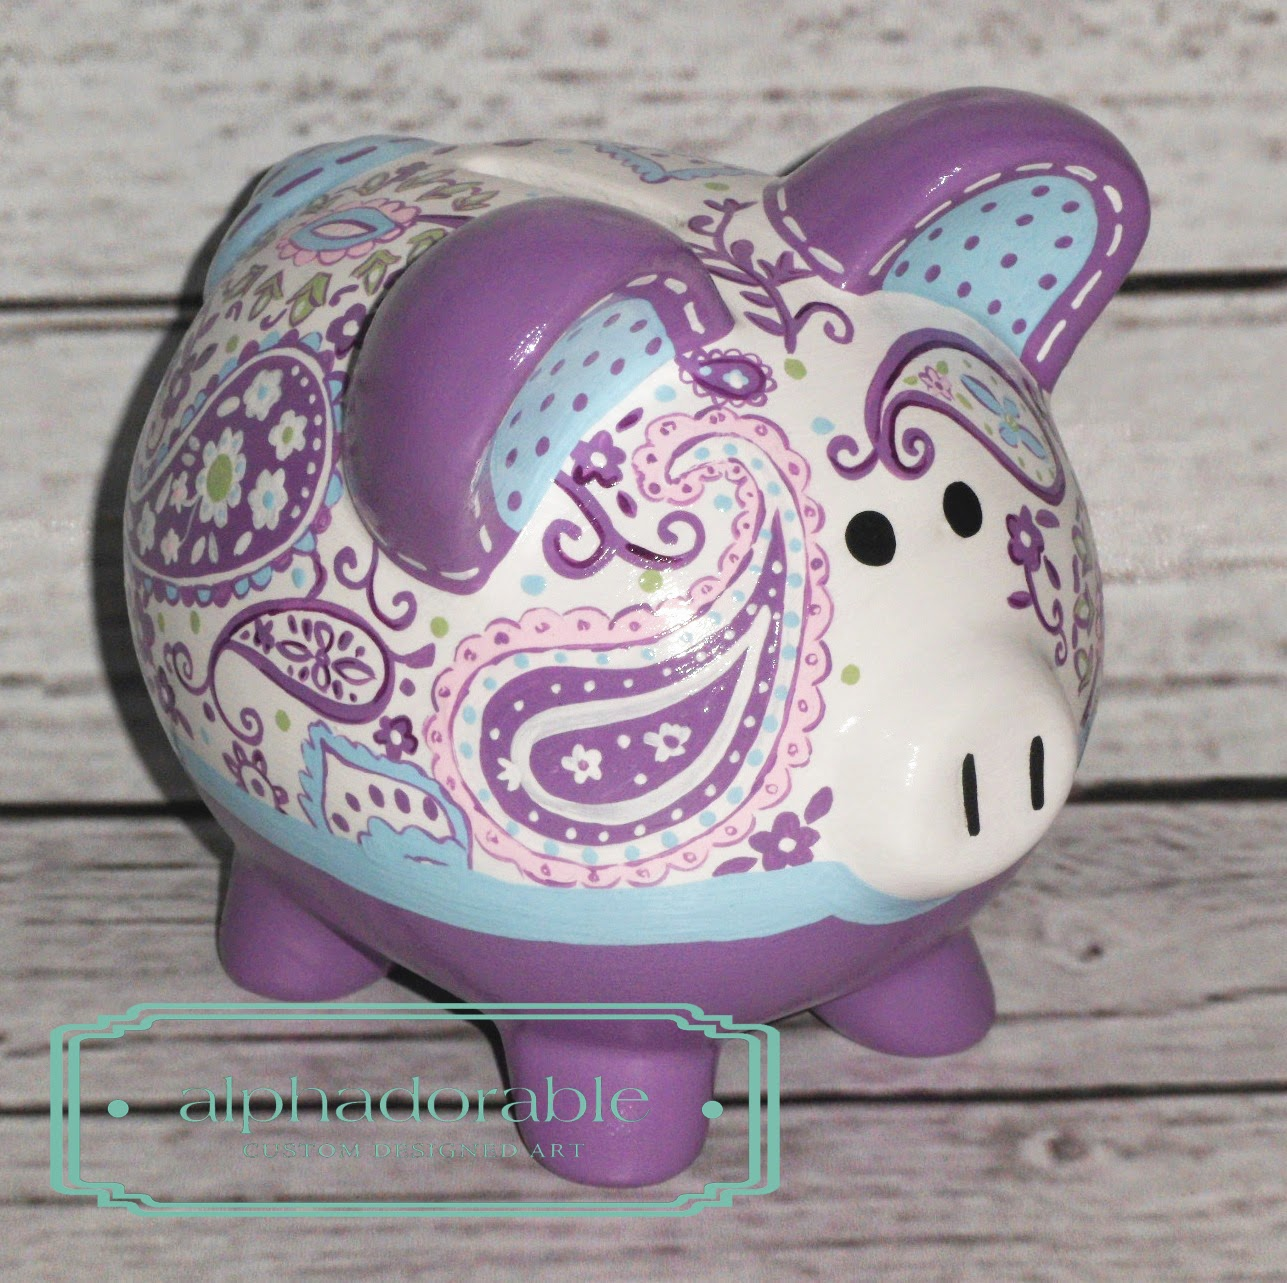 Alphadorable Custom Piggy Bank To Coordinate With The